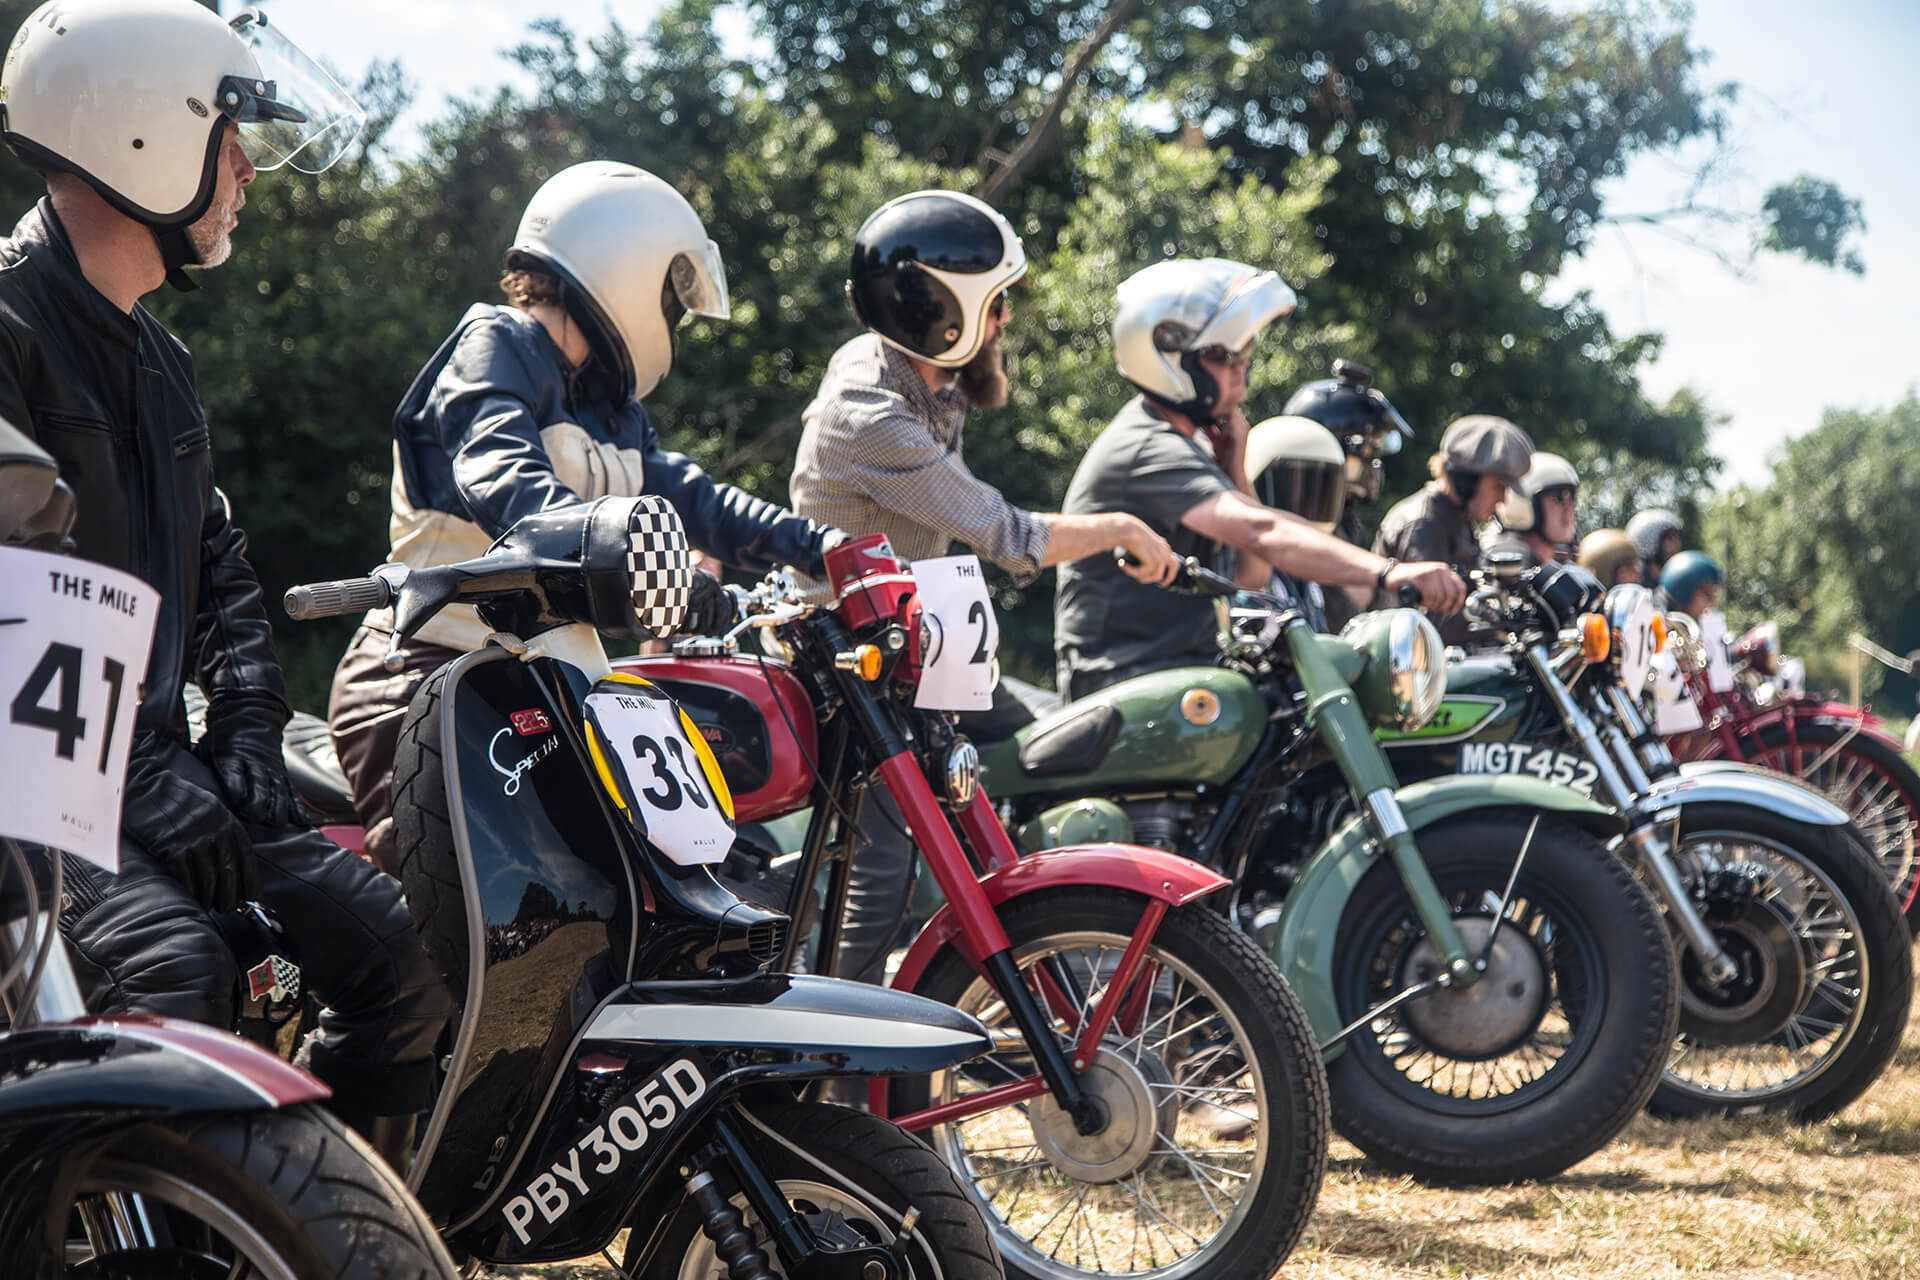 Malle Mile, Event, Motorcycle, Richard, Summer, WeAreShuffle, Agency, Photography, Film, Production, Malle London, Triumph, Flag, Biker, Field, Race